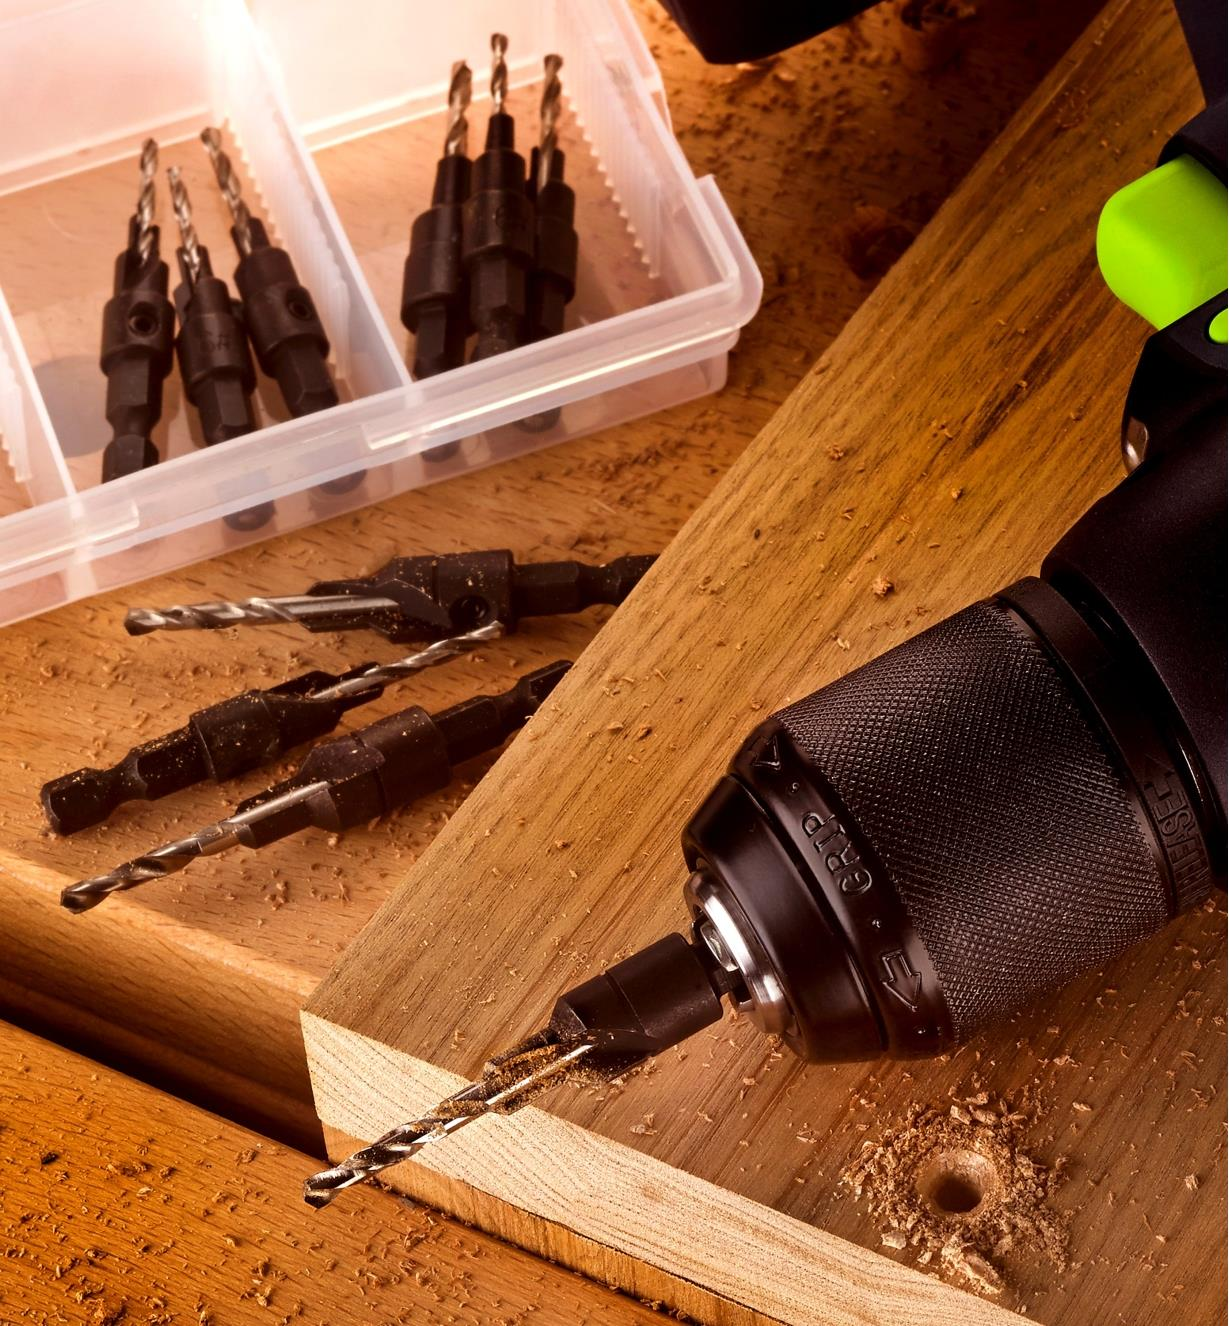 One of the pilot bits chucked in a drill, which lies beside a countersunk hole in a piece of wood